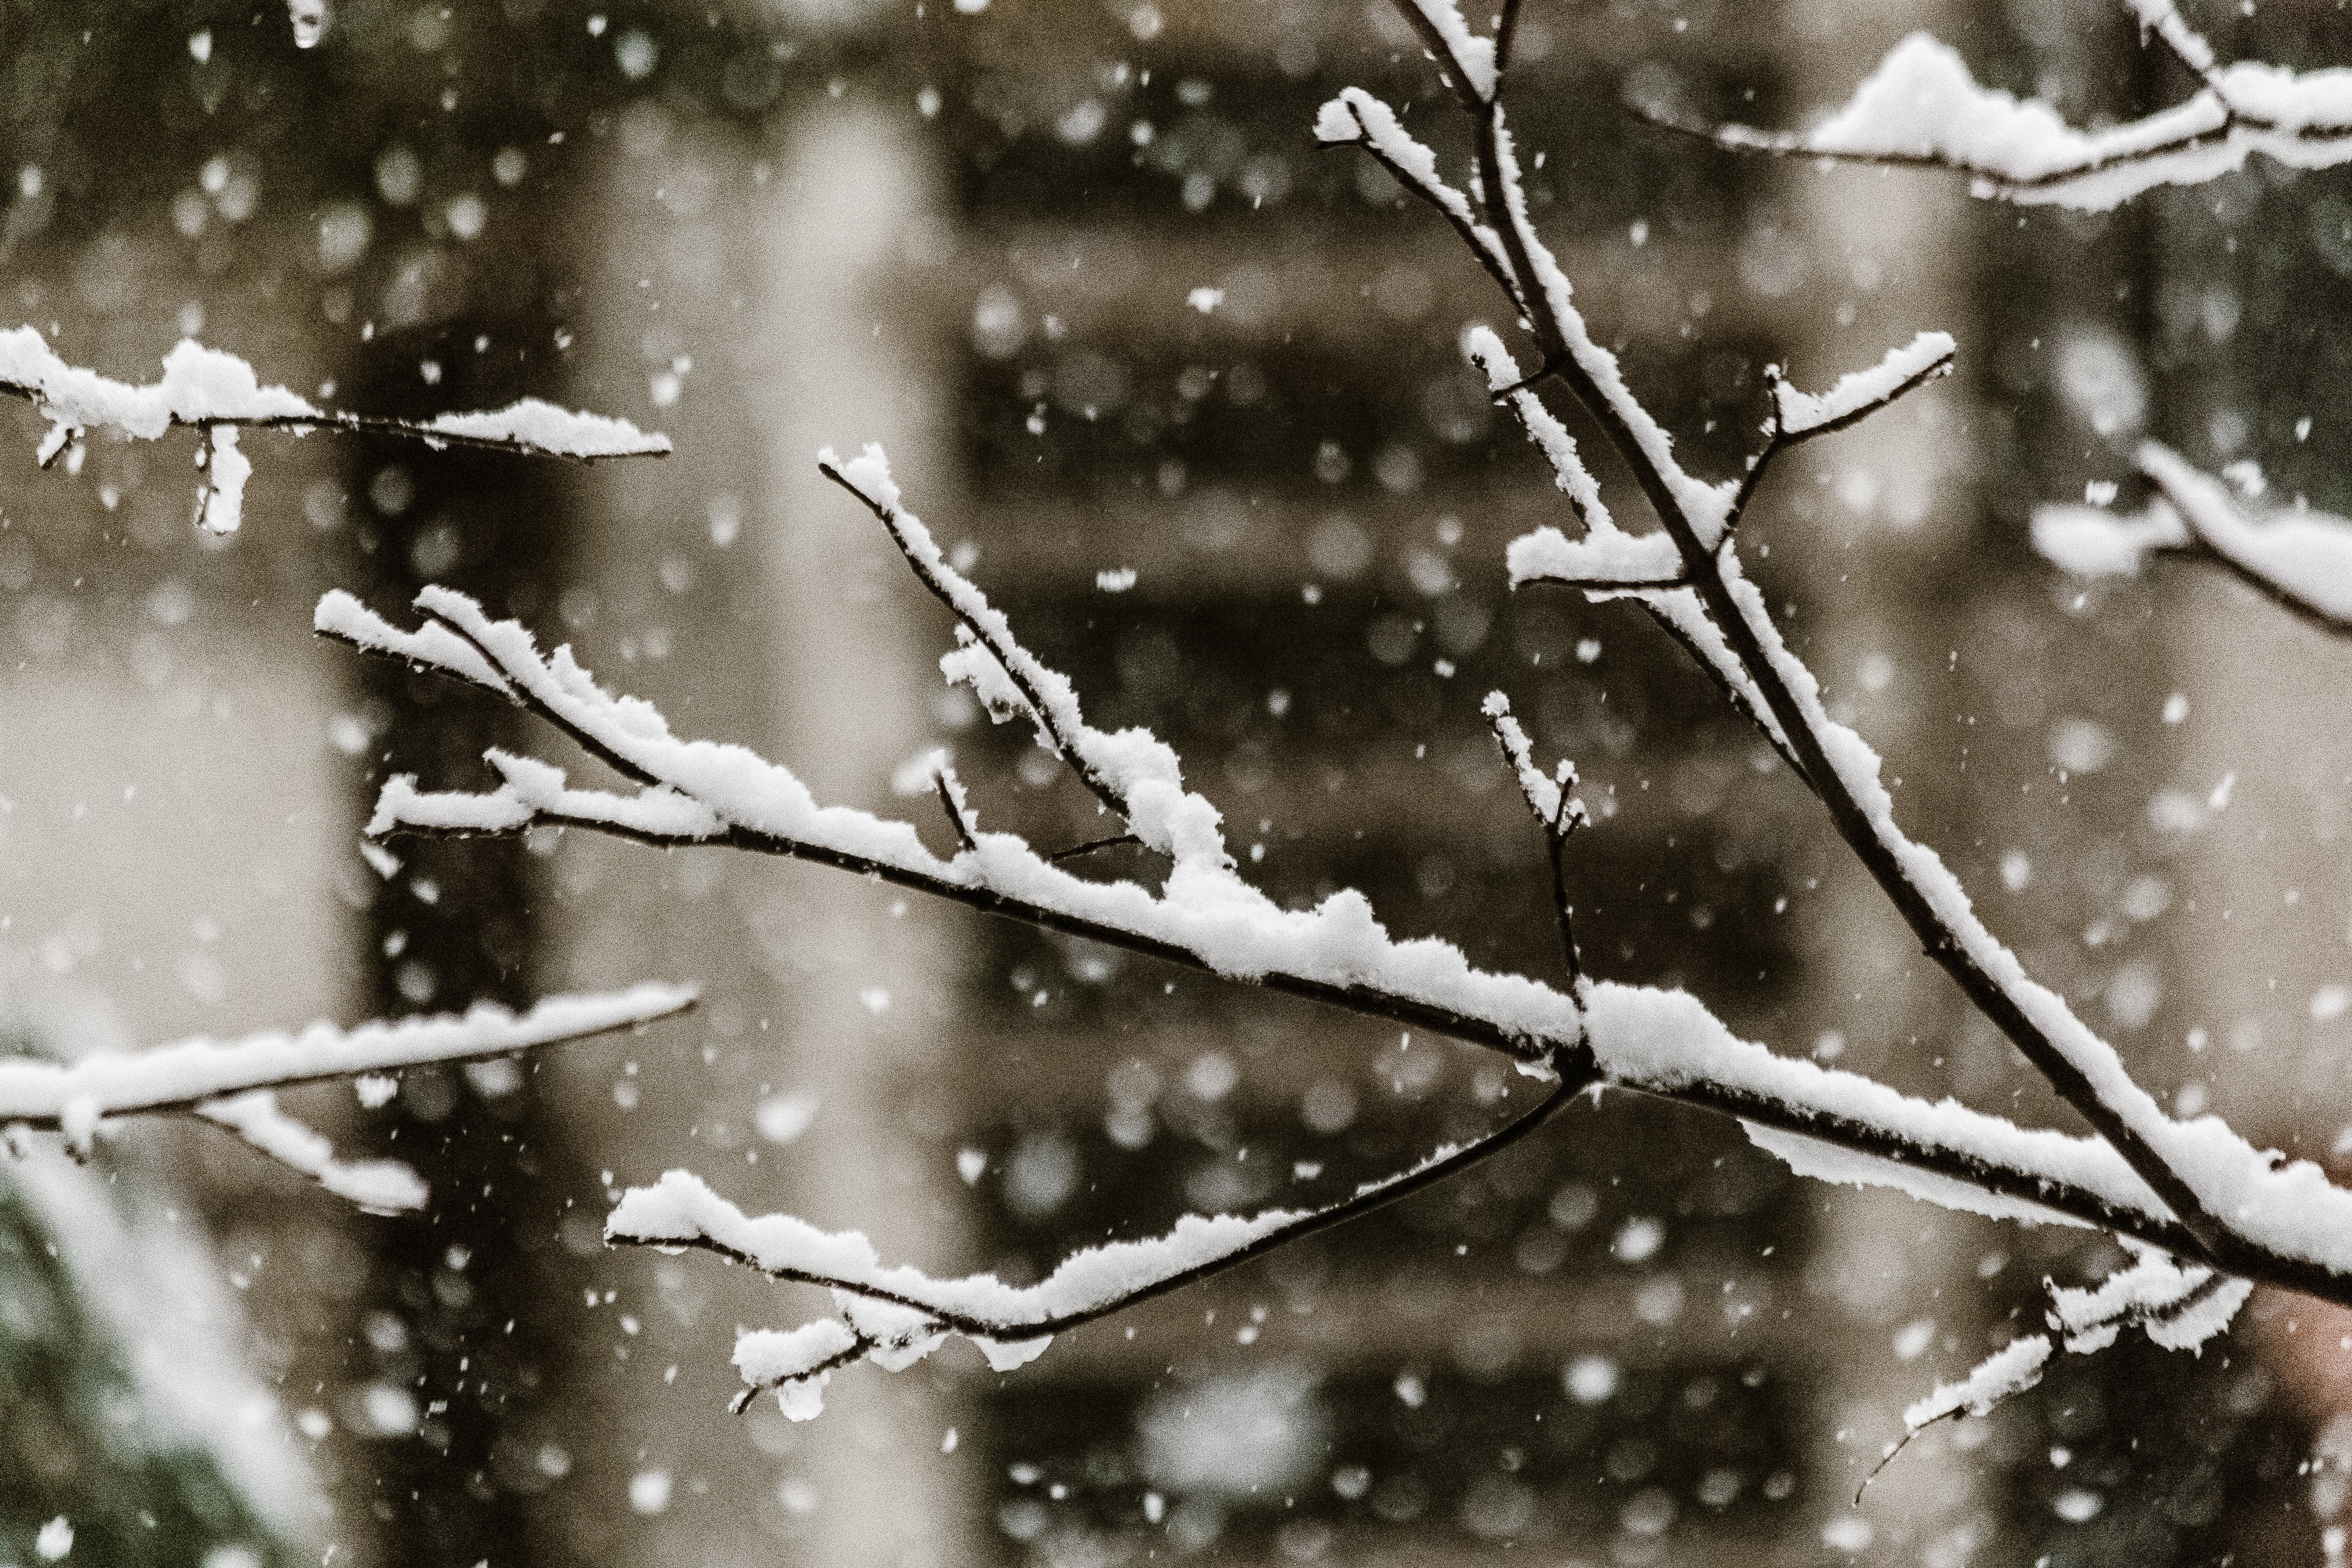 Close-Up Photo of Snow Falling on Tree Branches